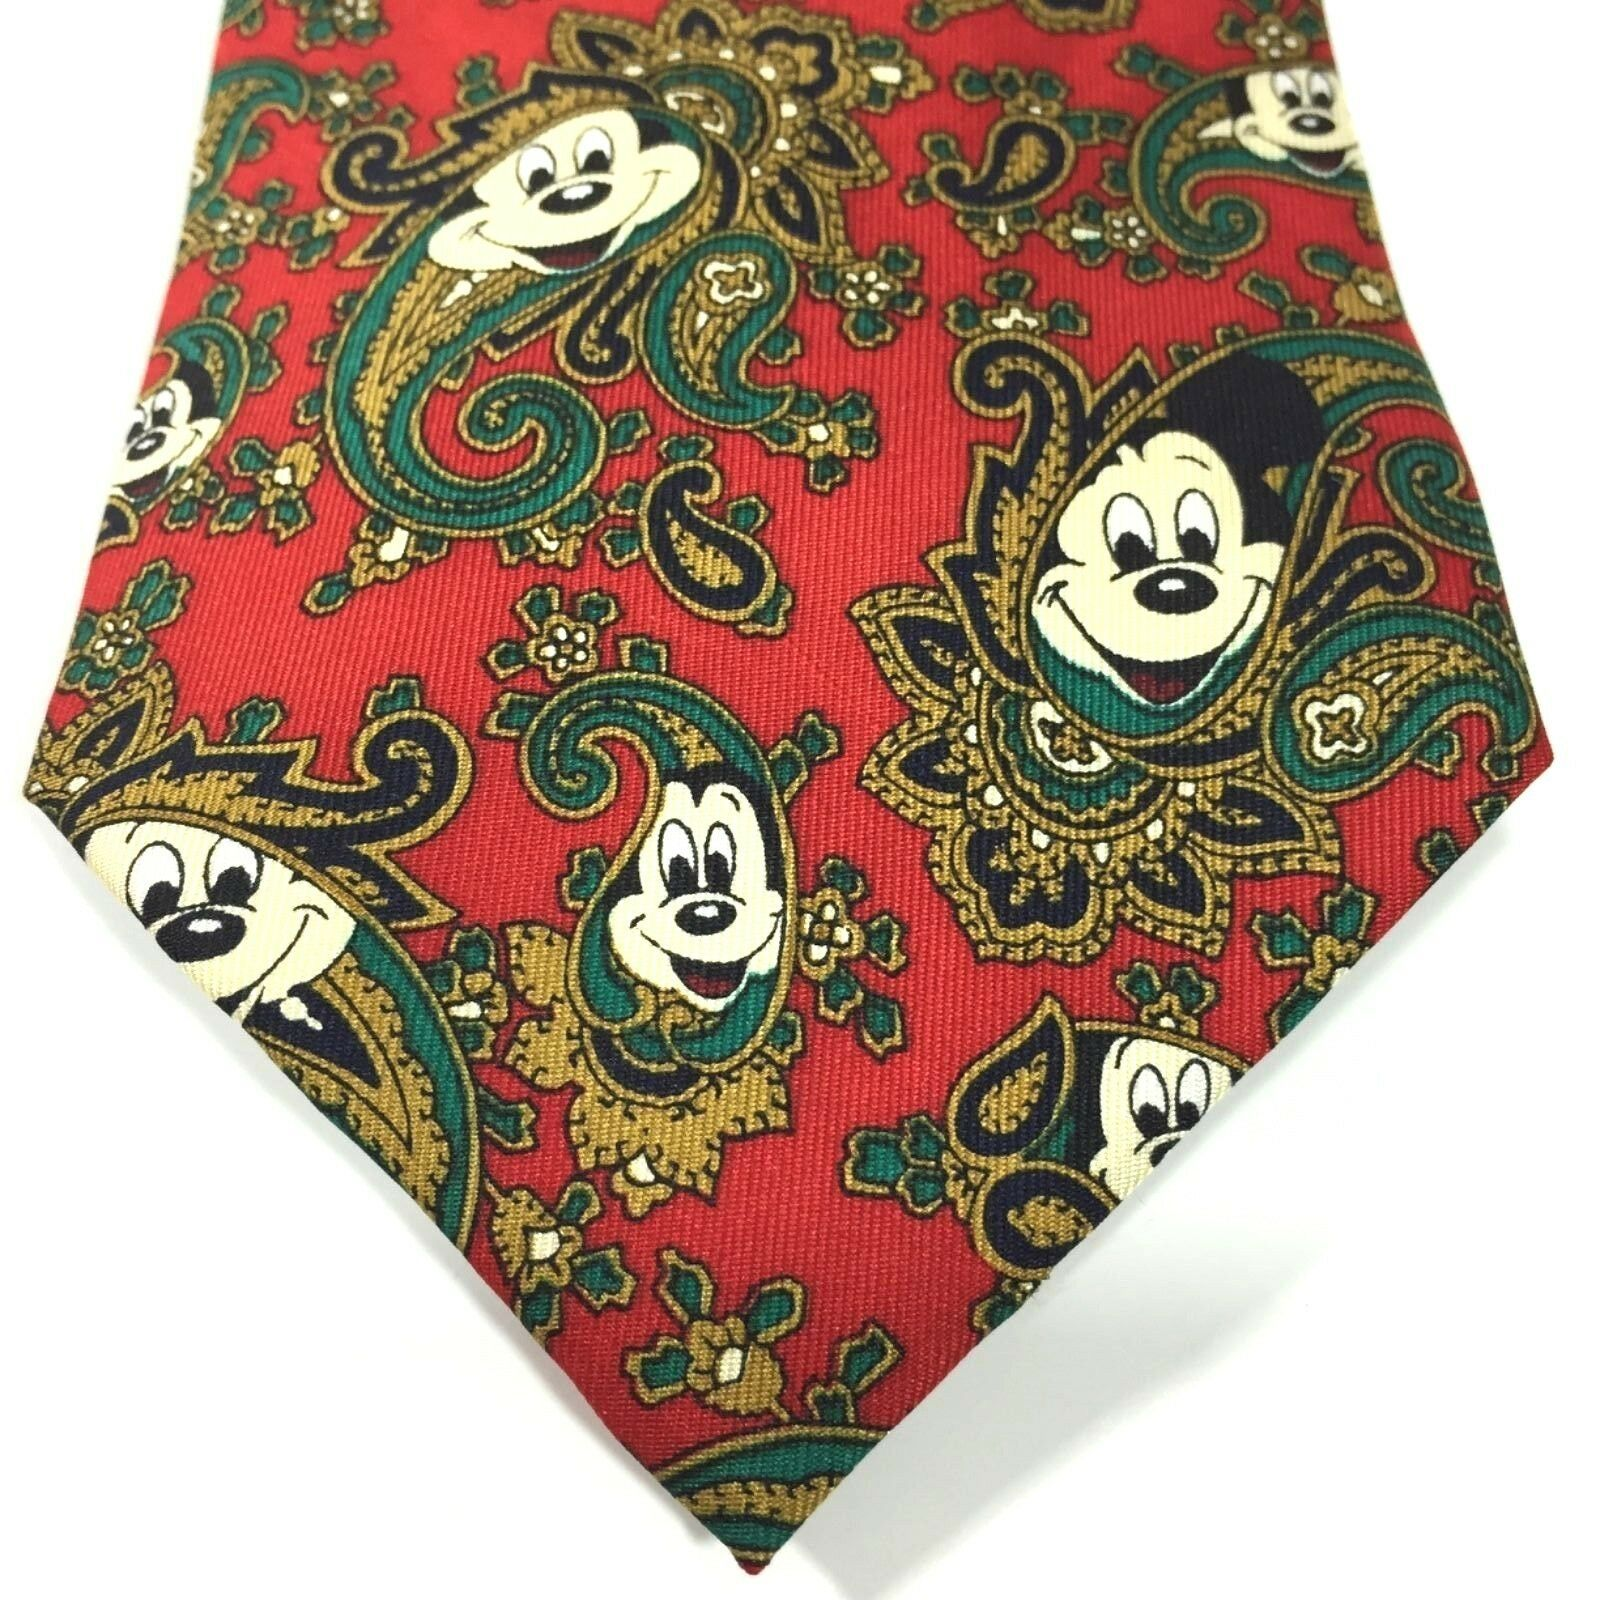 Primary image for Disney Hidden Mickey Mouse Necktie Silk Christmas Holidays Red Paisley 57 inch